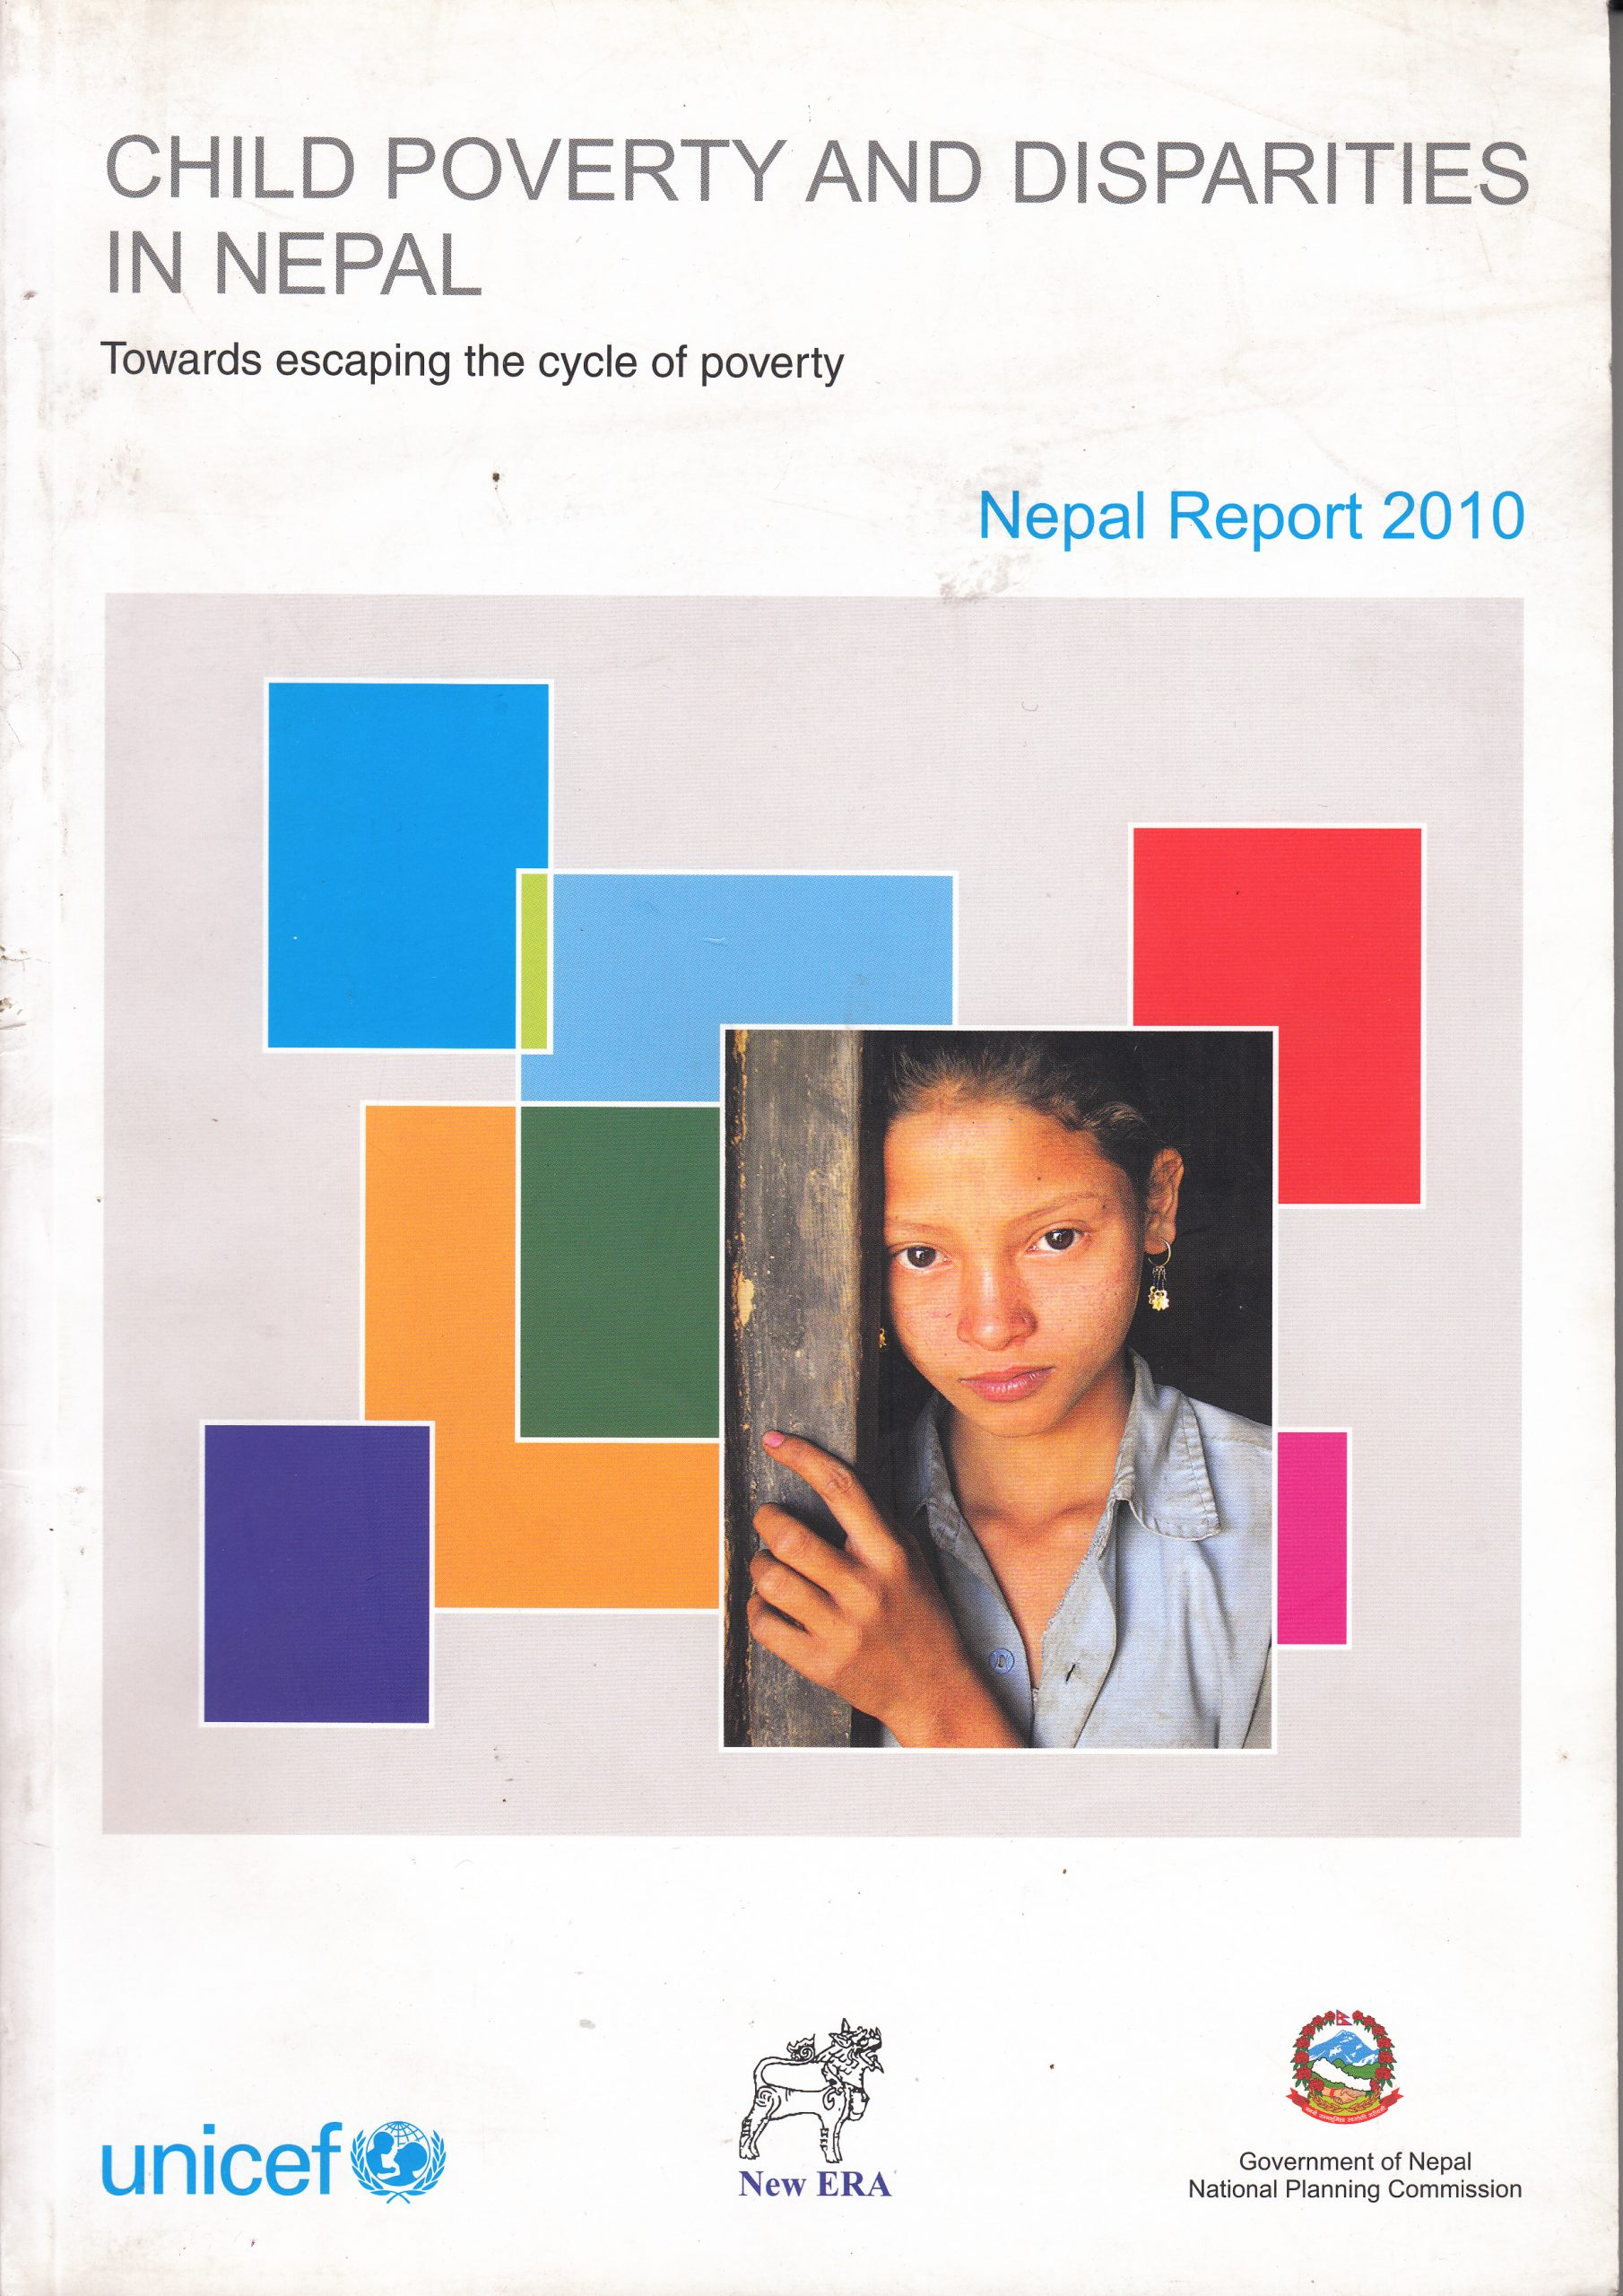 Child Poverty and Disparities in Nepal